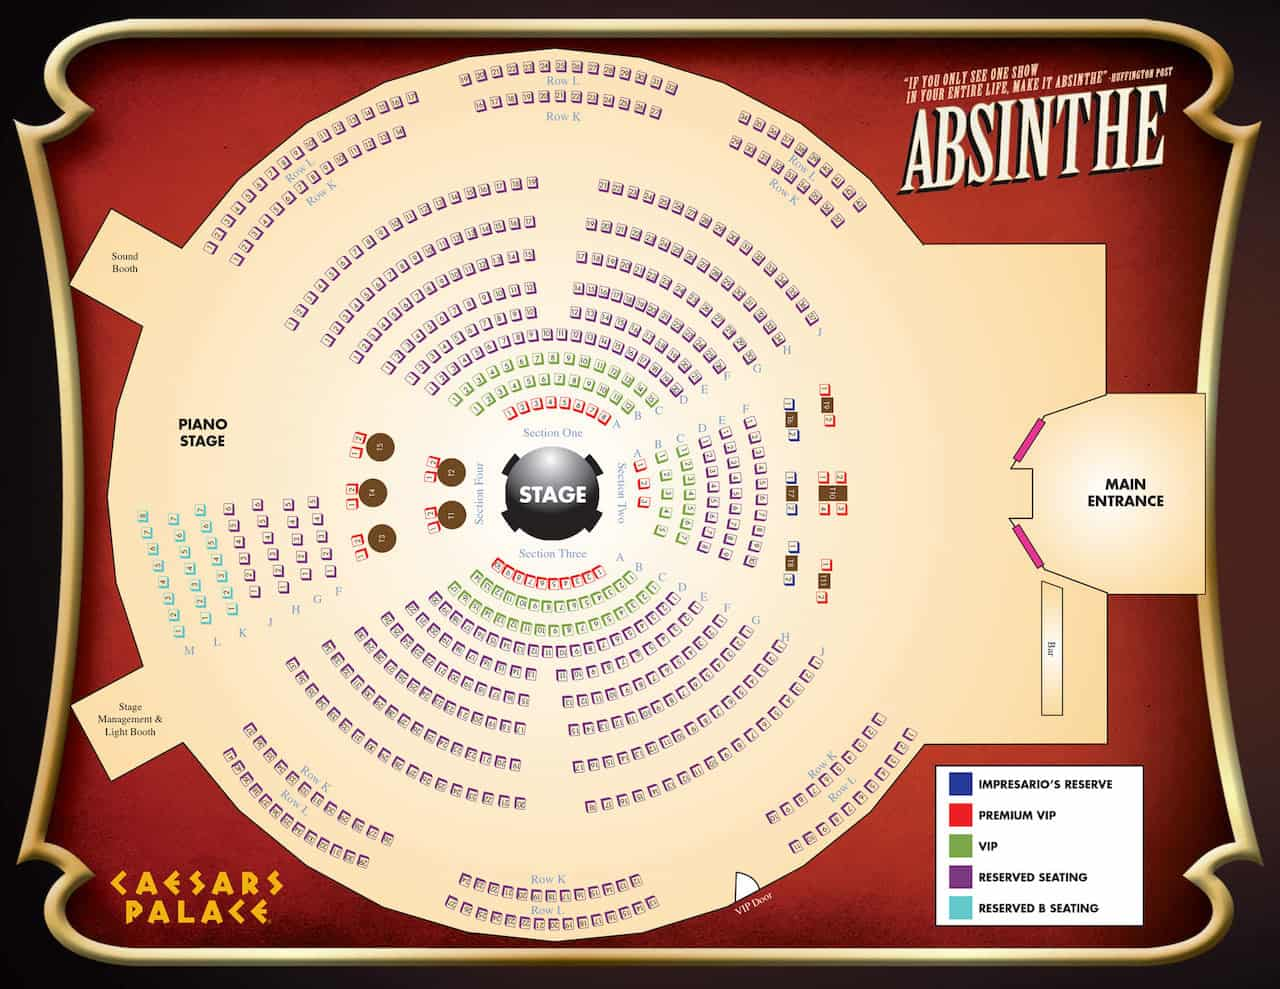 absinthe-show-seating-chart